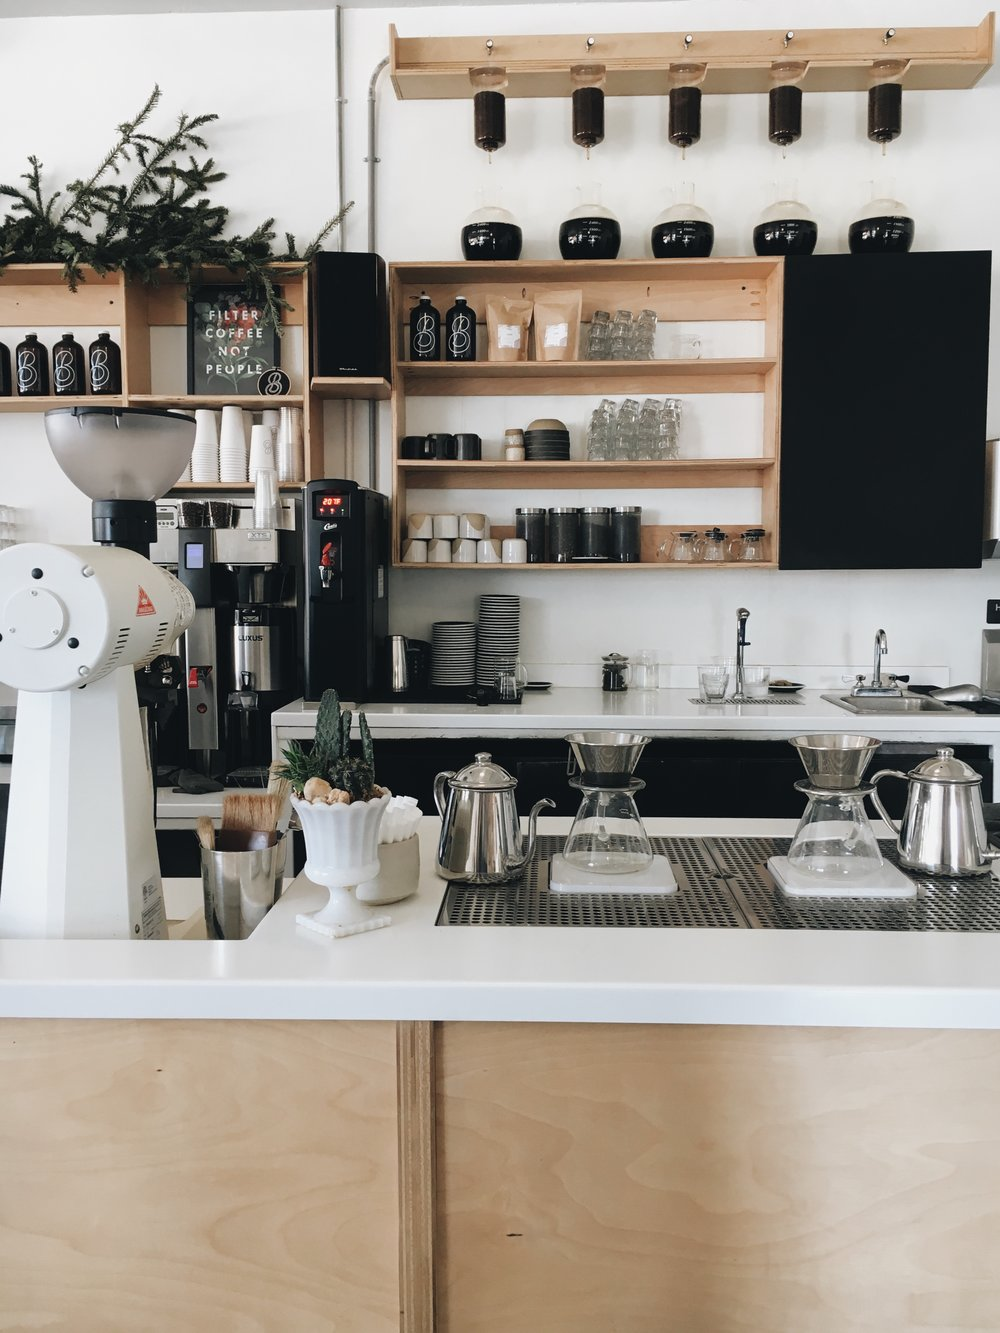 Bandit Coffee Co. |2662 Central Ave, St. Petersburg, FL 33712